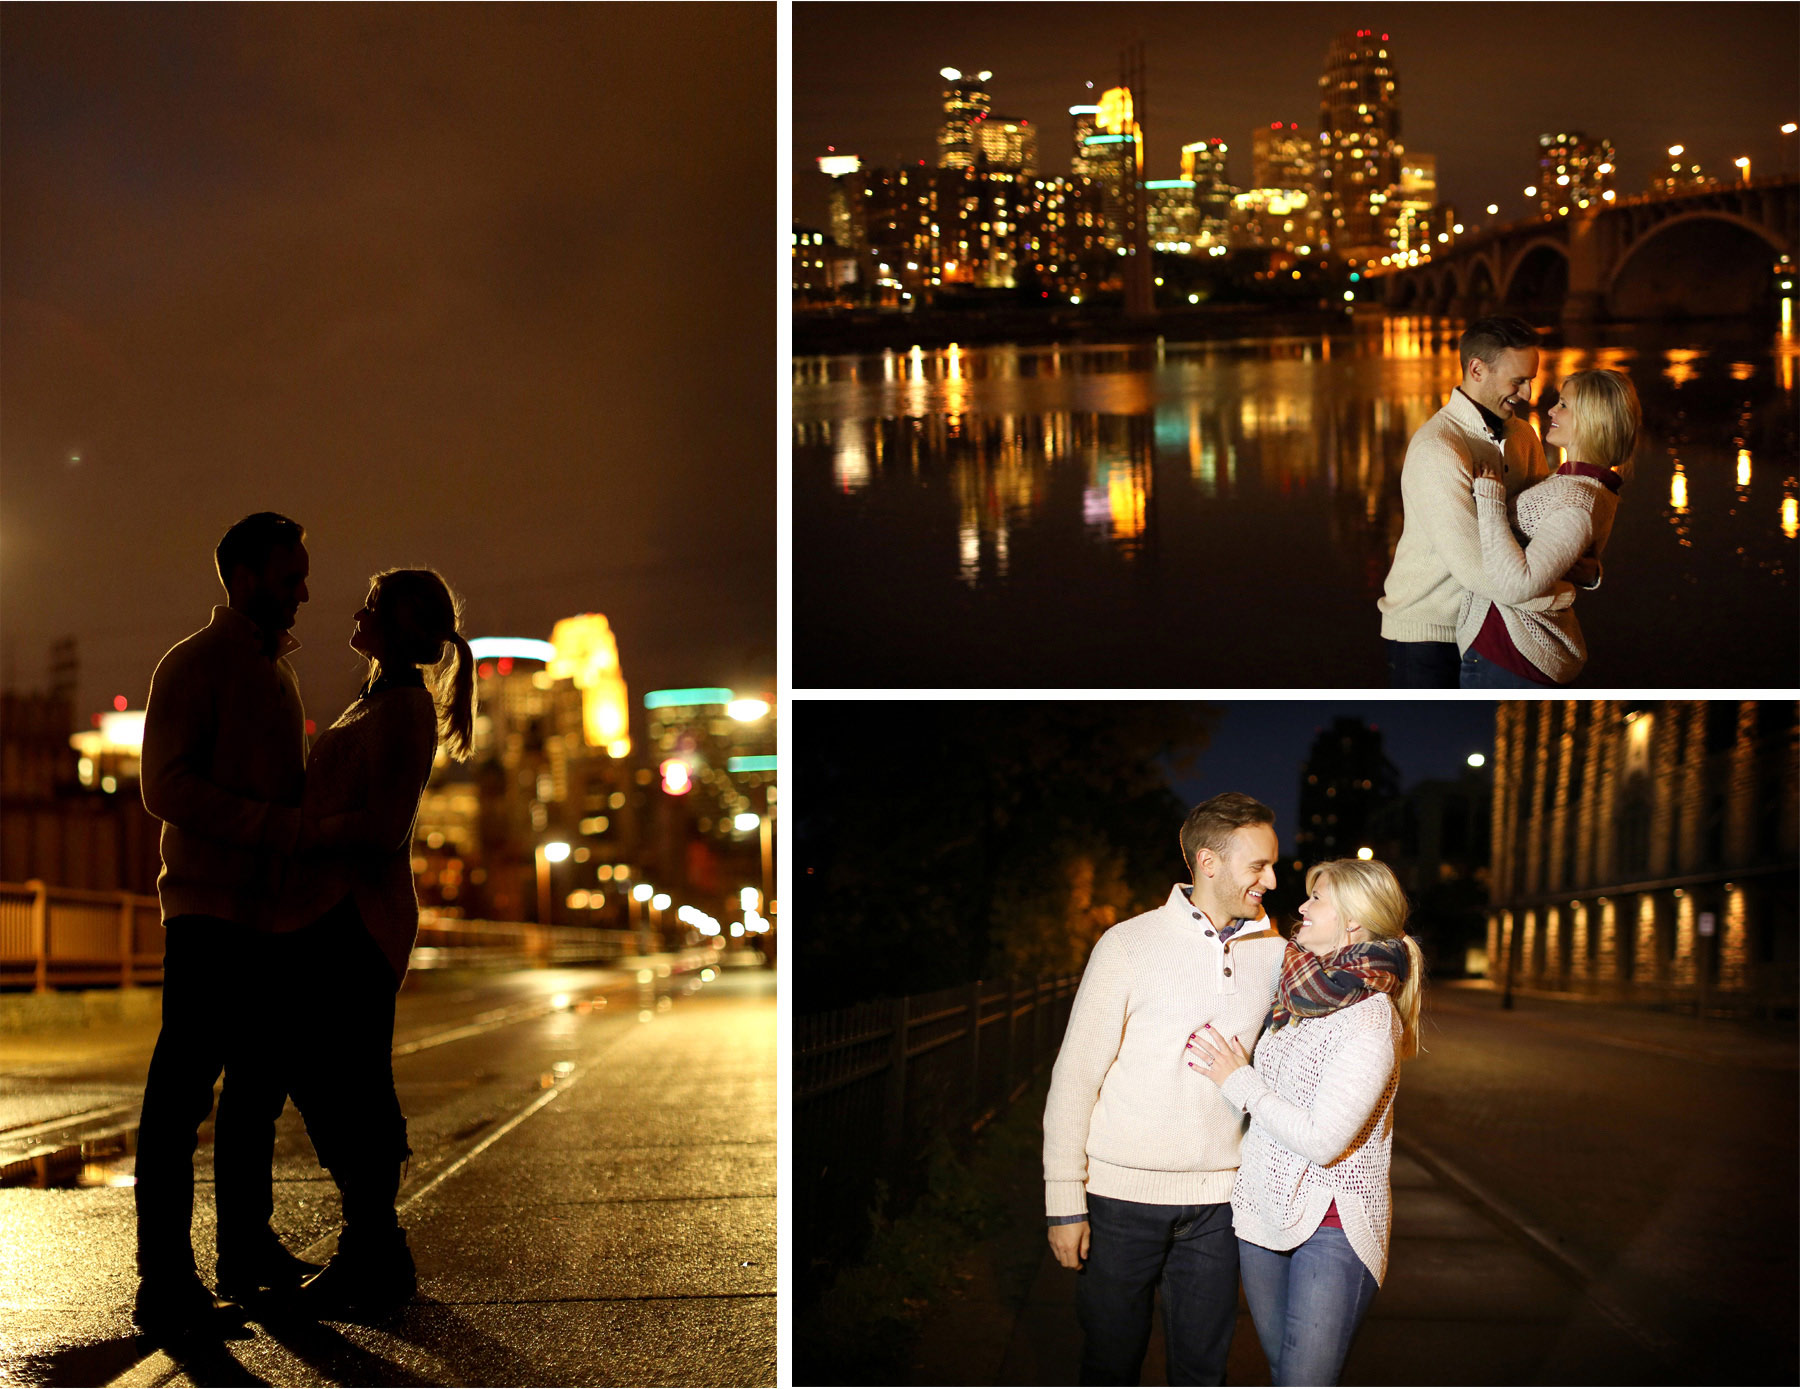 11-Minneapolis-Minnesota-Wedding-Photographer-by-Andrew-Vick-Photography-Fall-Autumn-Engagement-Bride-Groom-Downtown-Skyline-Stone-Arch-Bridge-Night-Silhouette-Embrace-Mississippi-River-Mallory-and-Kyle.jpg